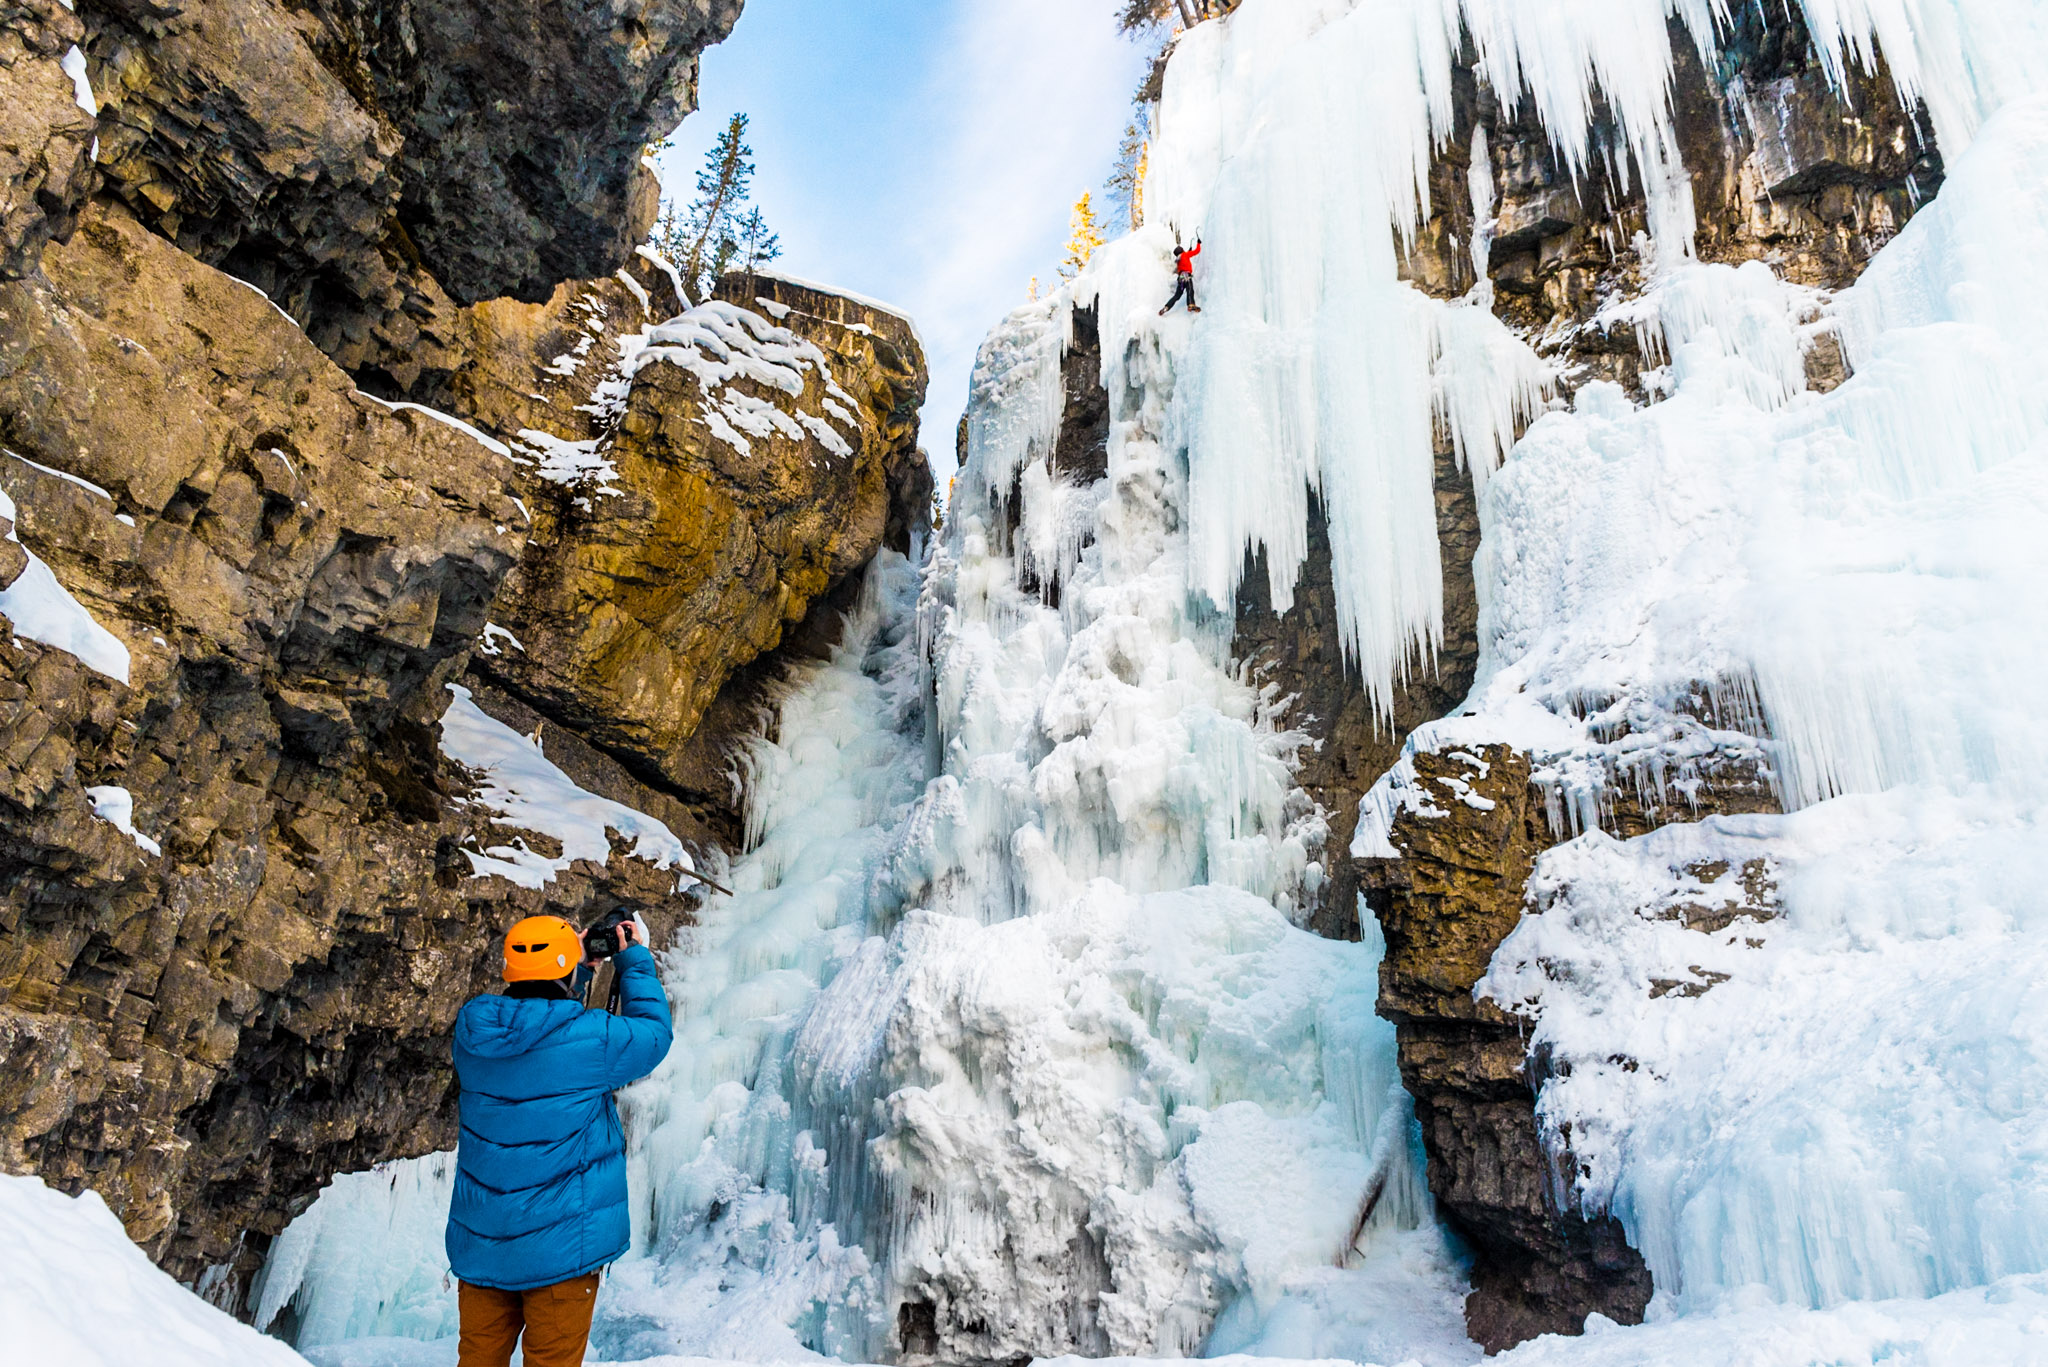 Chelsea Czibere - January 25, 2019 - Johnston Canyon-25.jpg